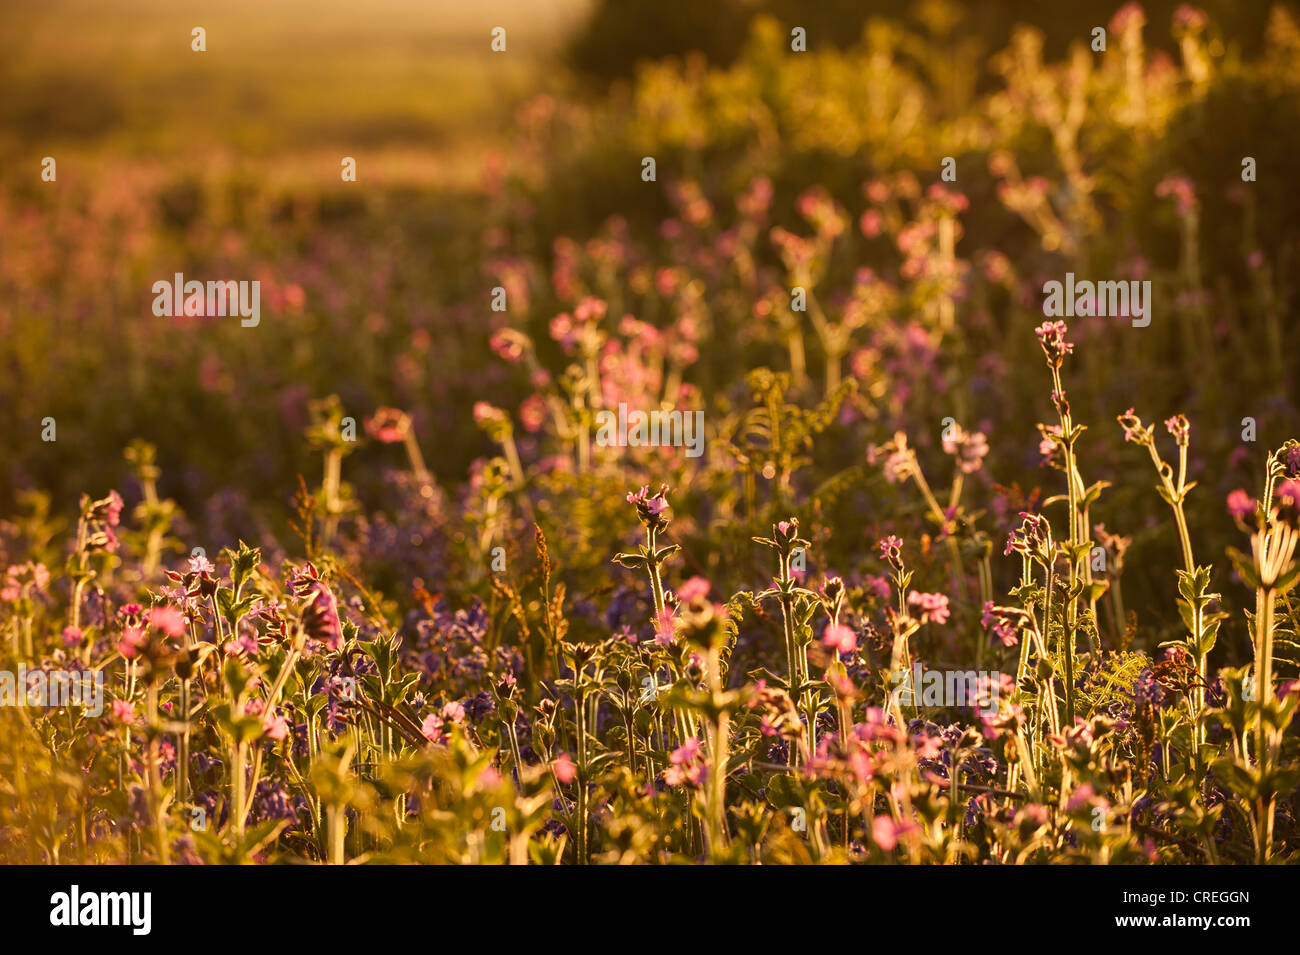 Red Campion, Silene dioica at dusk Stock Photo